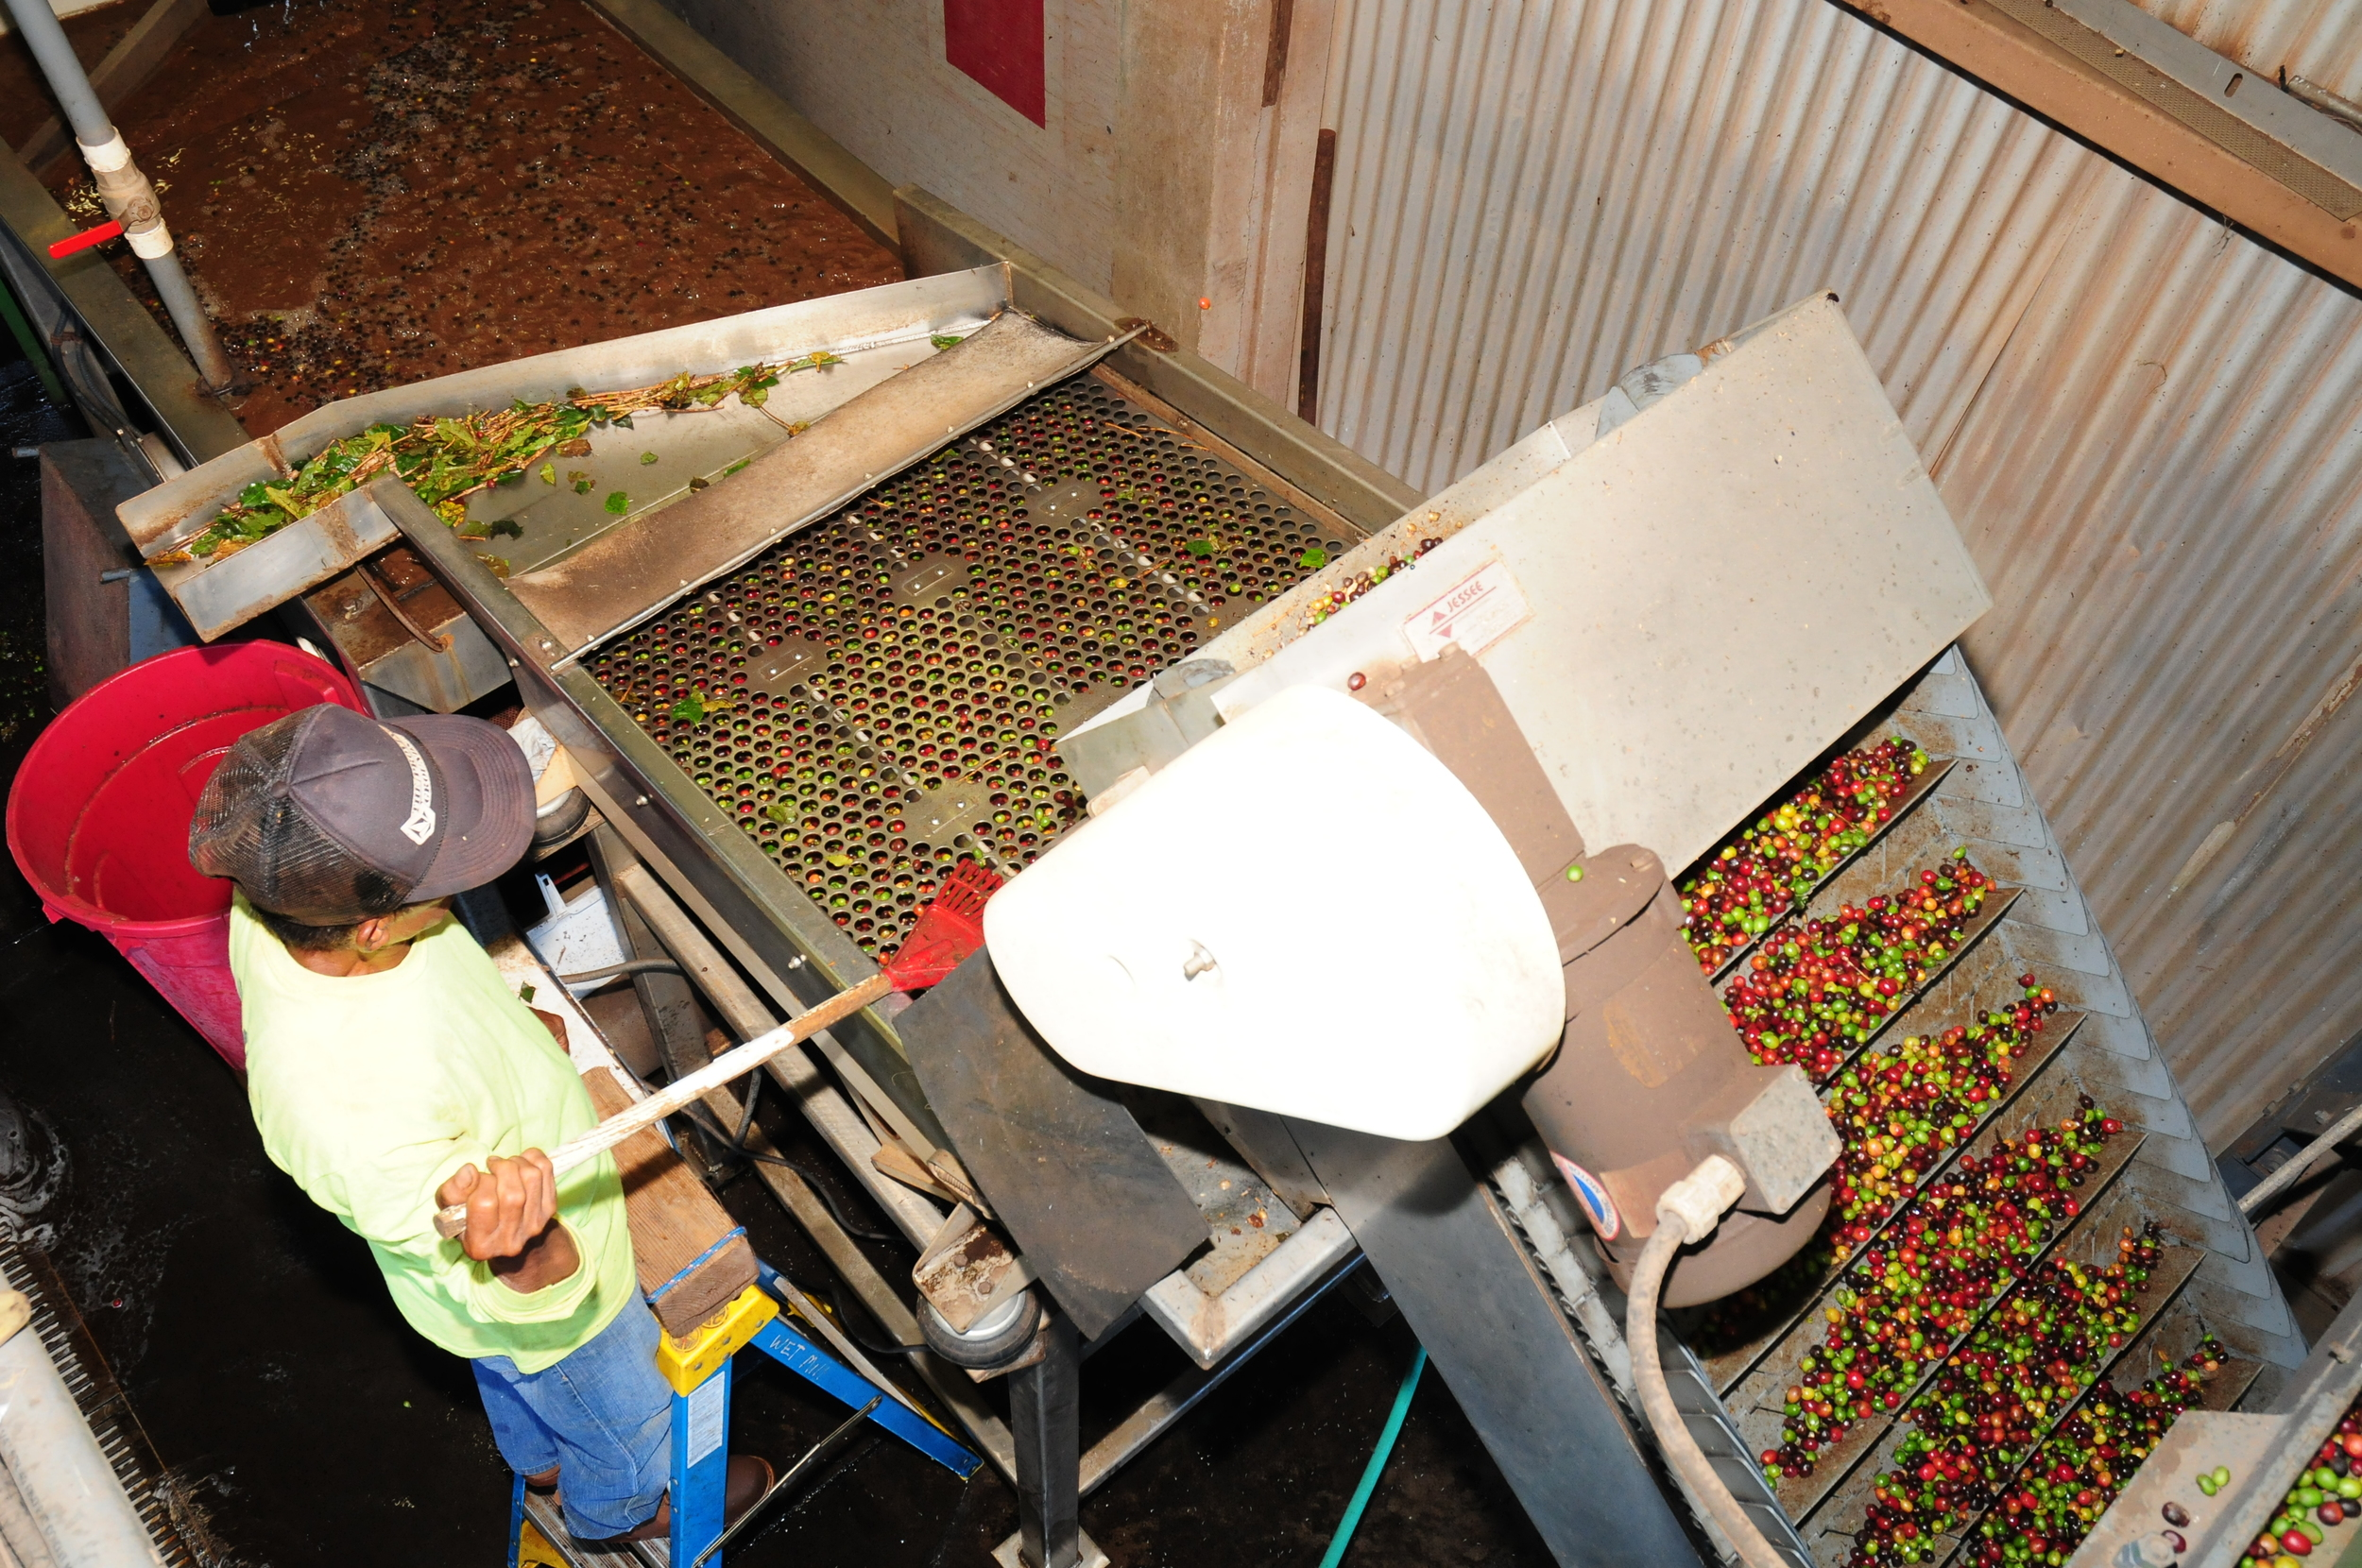 Separation of ripe, under ripe and greens cherries takes place at the wet mill.